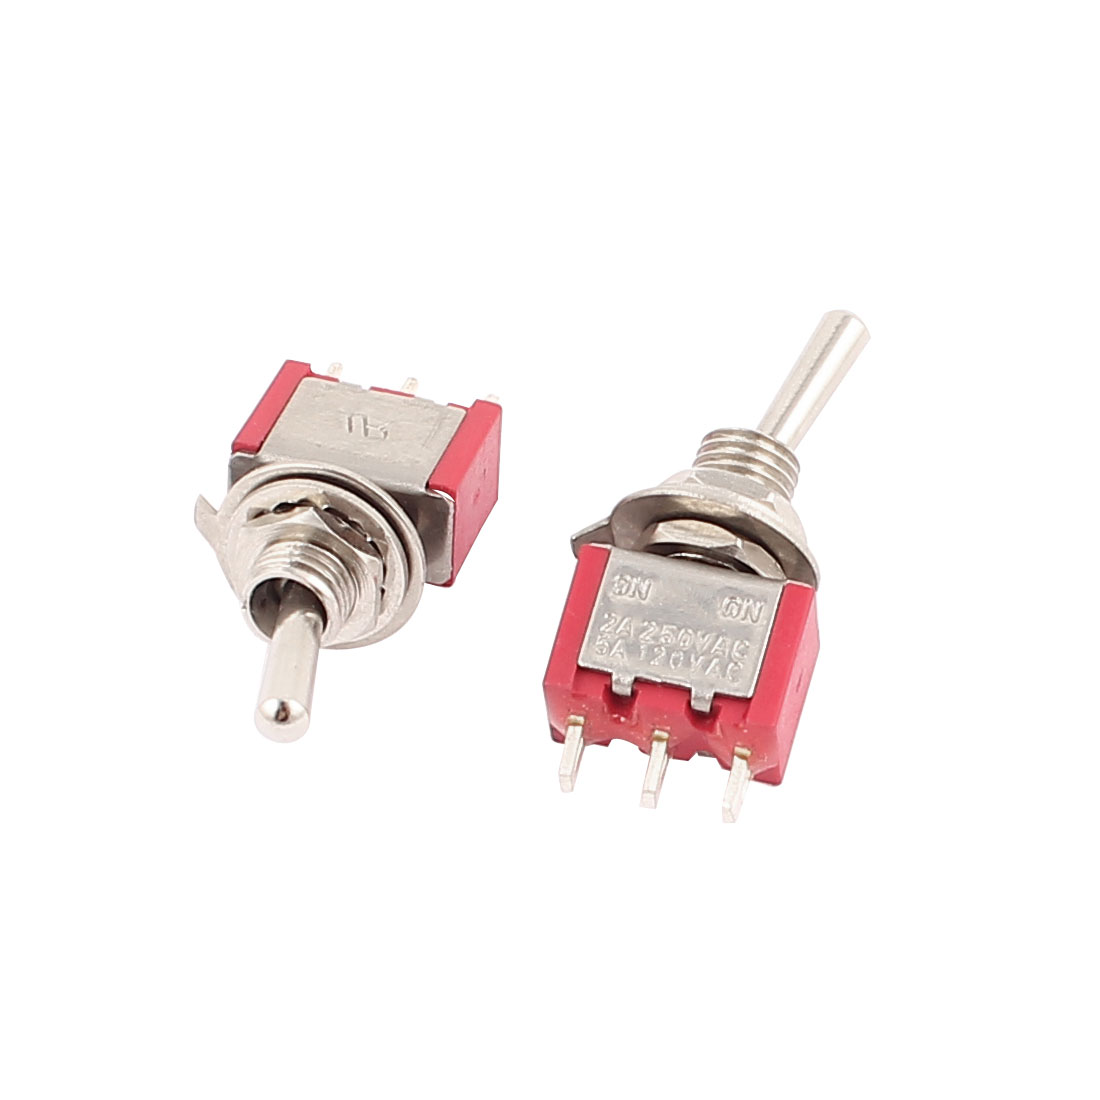 AC 250V/2A 120V/5A SPDT On/On 2 Position Miniature Toggle Switch 2Pcs